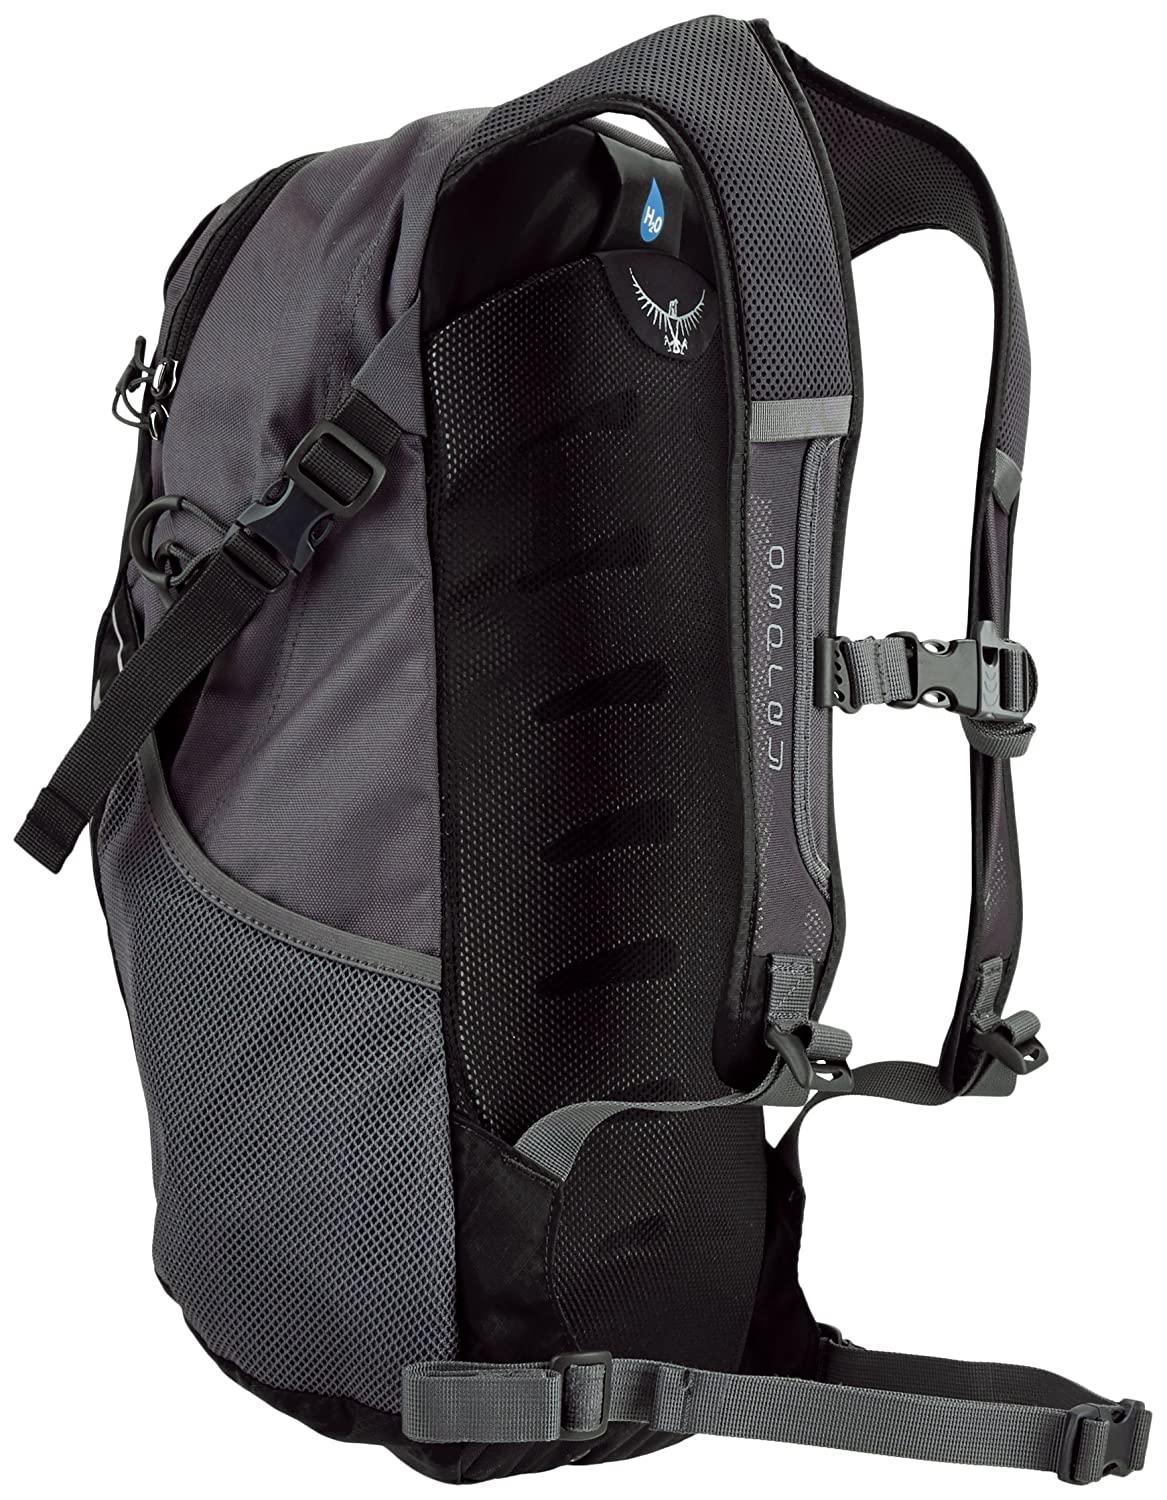 EPIC REVIEW • Is the Osprey Daylite Plus for you? (April 2019)